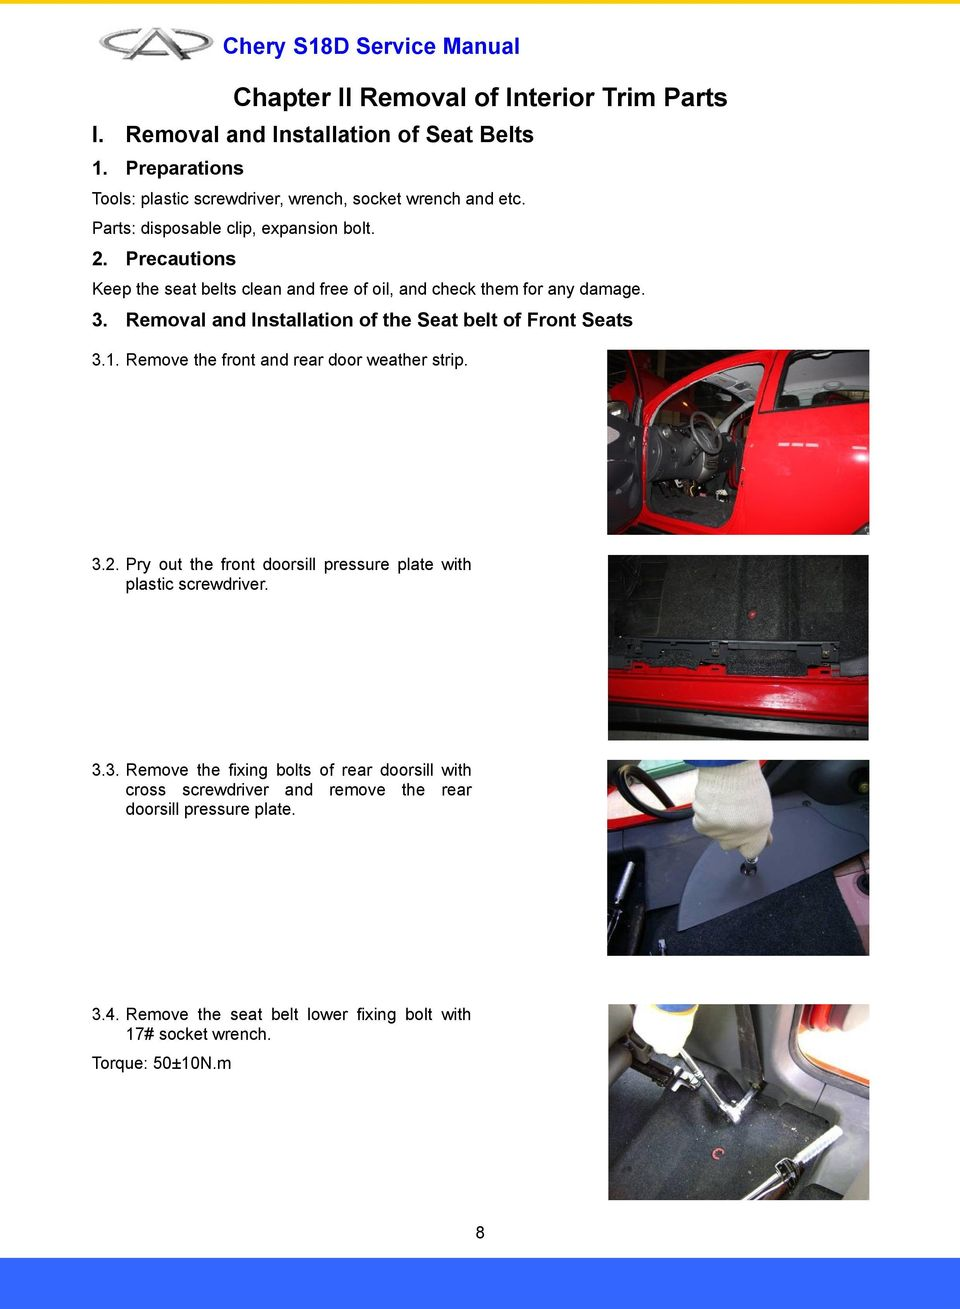 Removal and Installation of the Seat belt of Front Seats 3.1. Remove the front and rear door weather strip. 3.2.